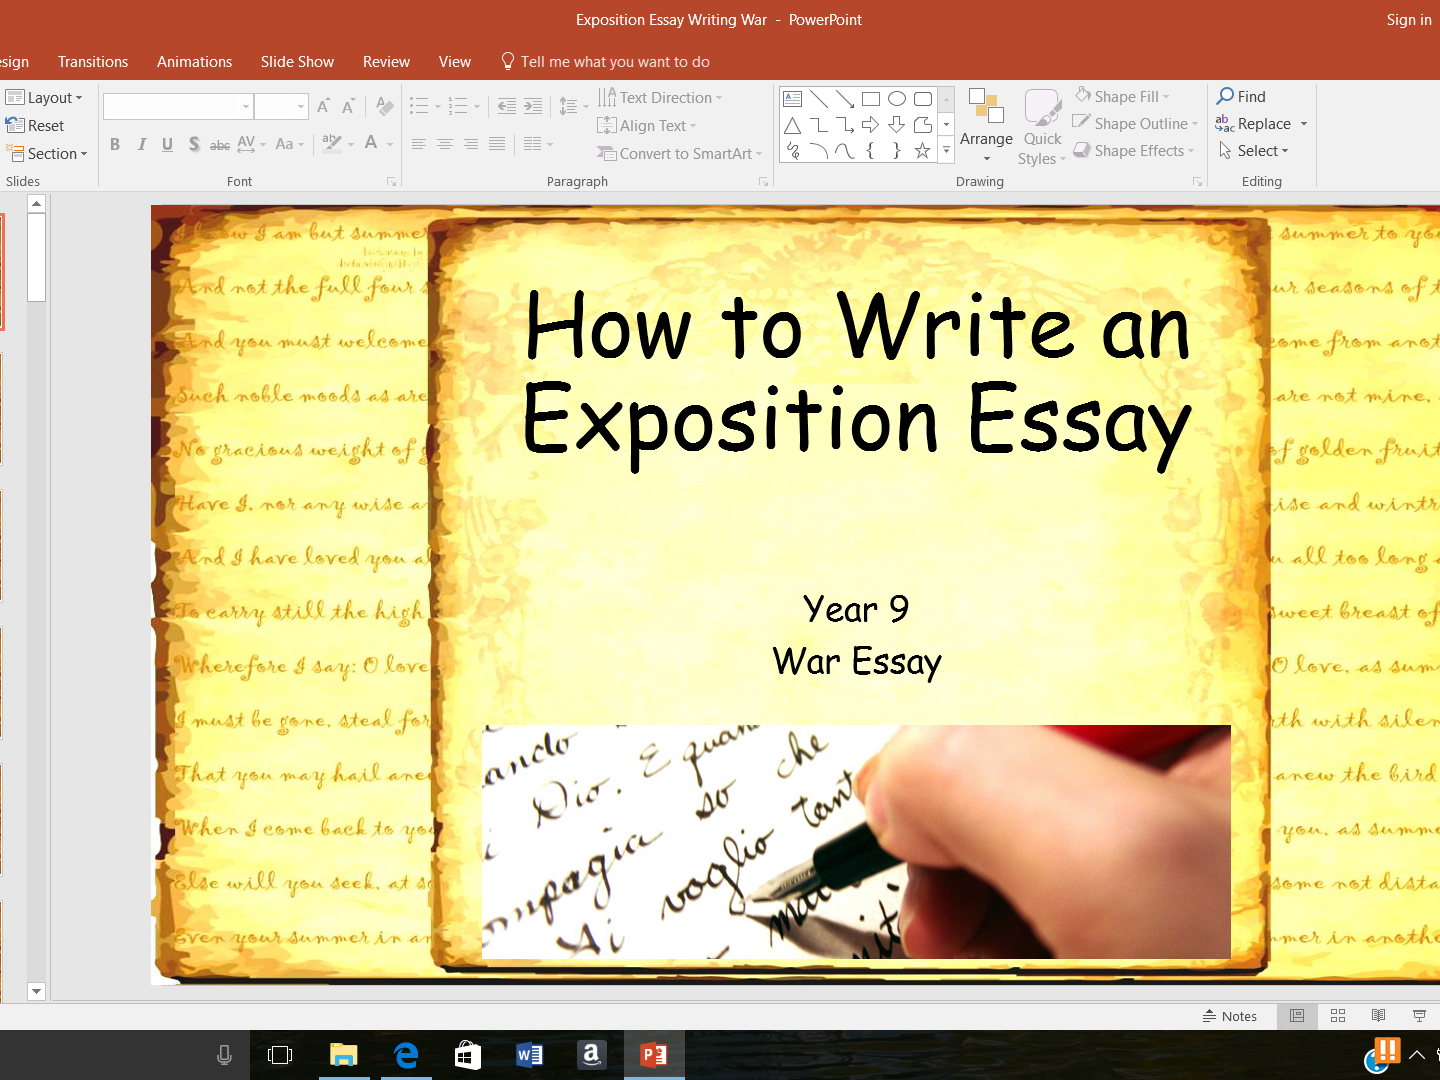 Exposition Essay Writing - War Unit of Work - KS3 - Preparation for new WJEC English Language GCSE